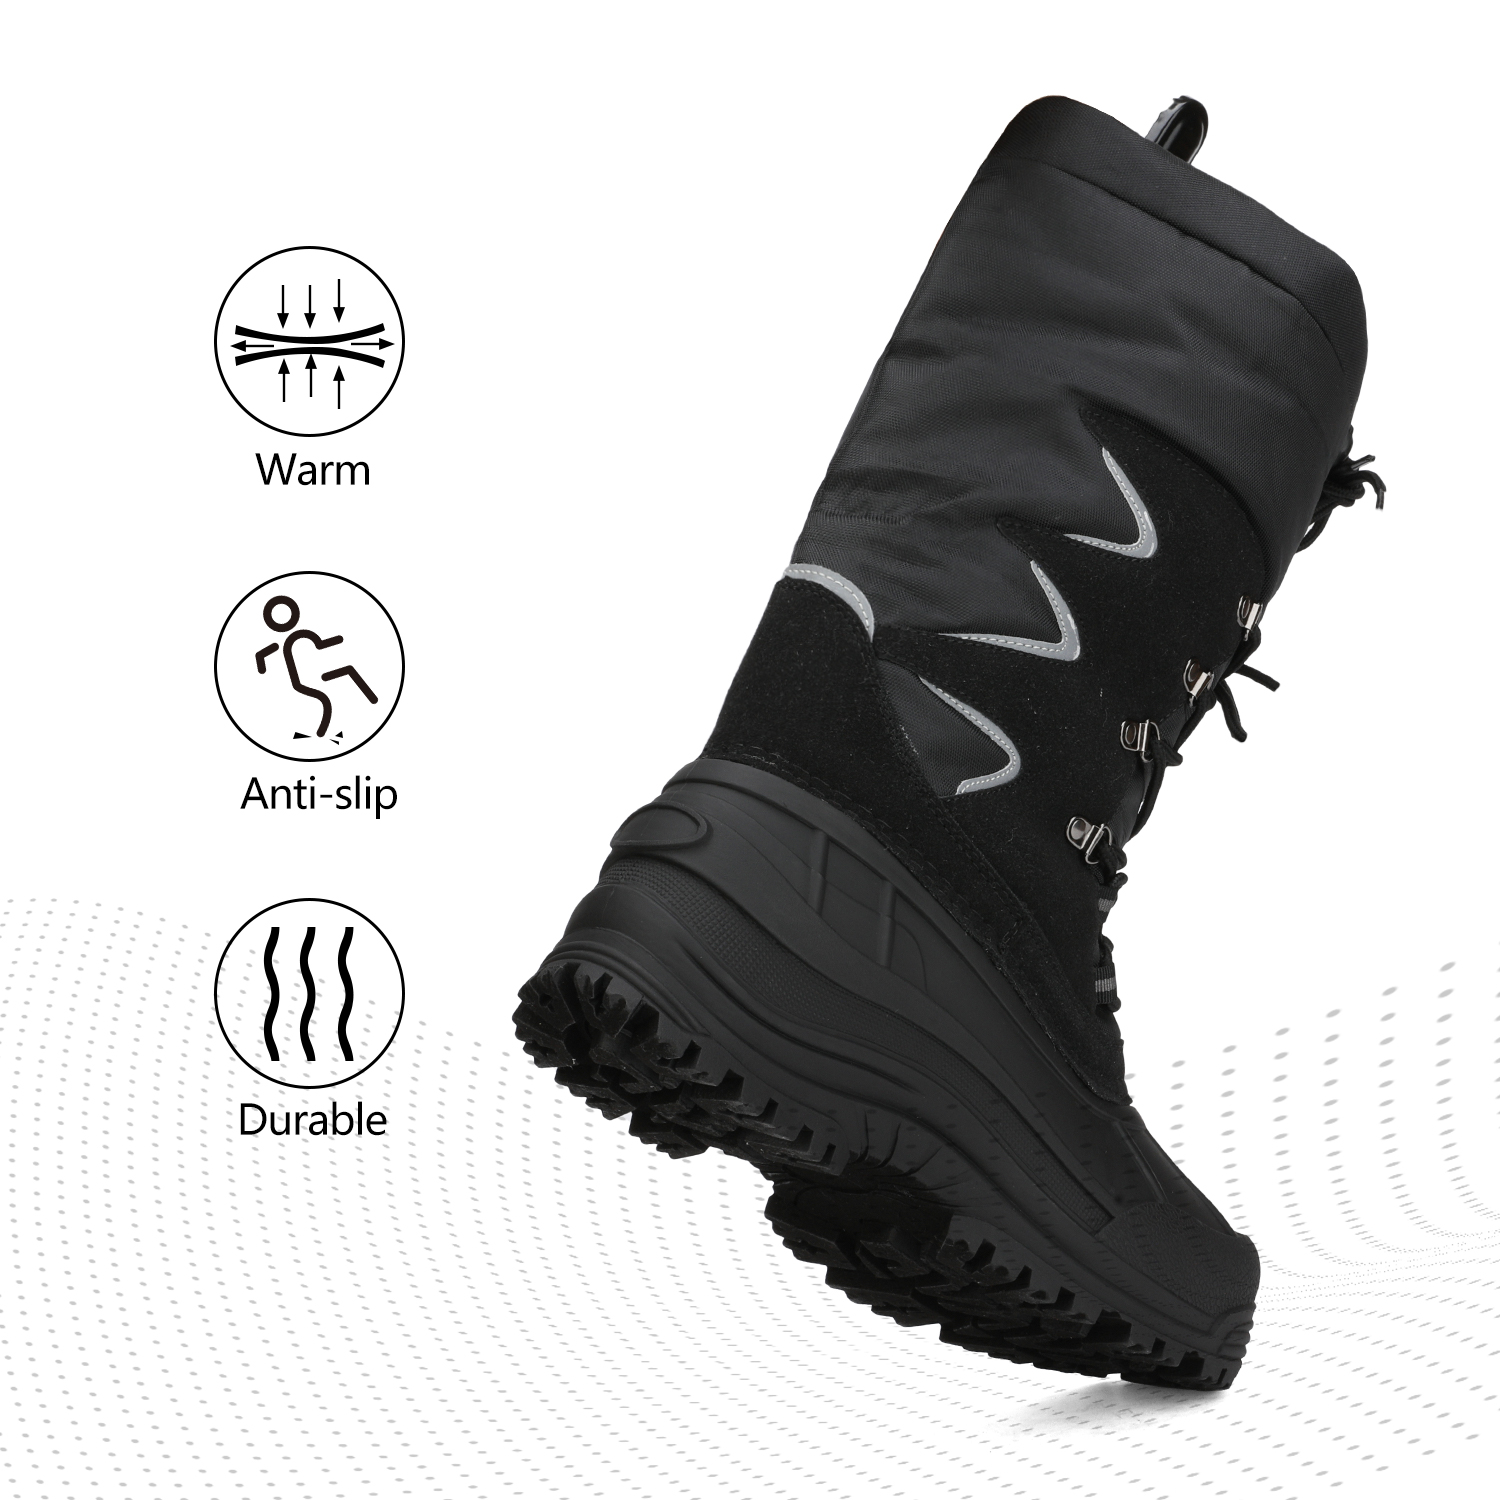 NORTIV-8-Men-039-s-Winter-Snow-Boots-Waterproof-Warm-Thermolite-Outdoor-Hiking-Boots thumbnail 15